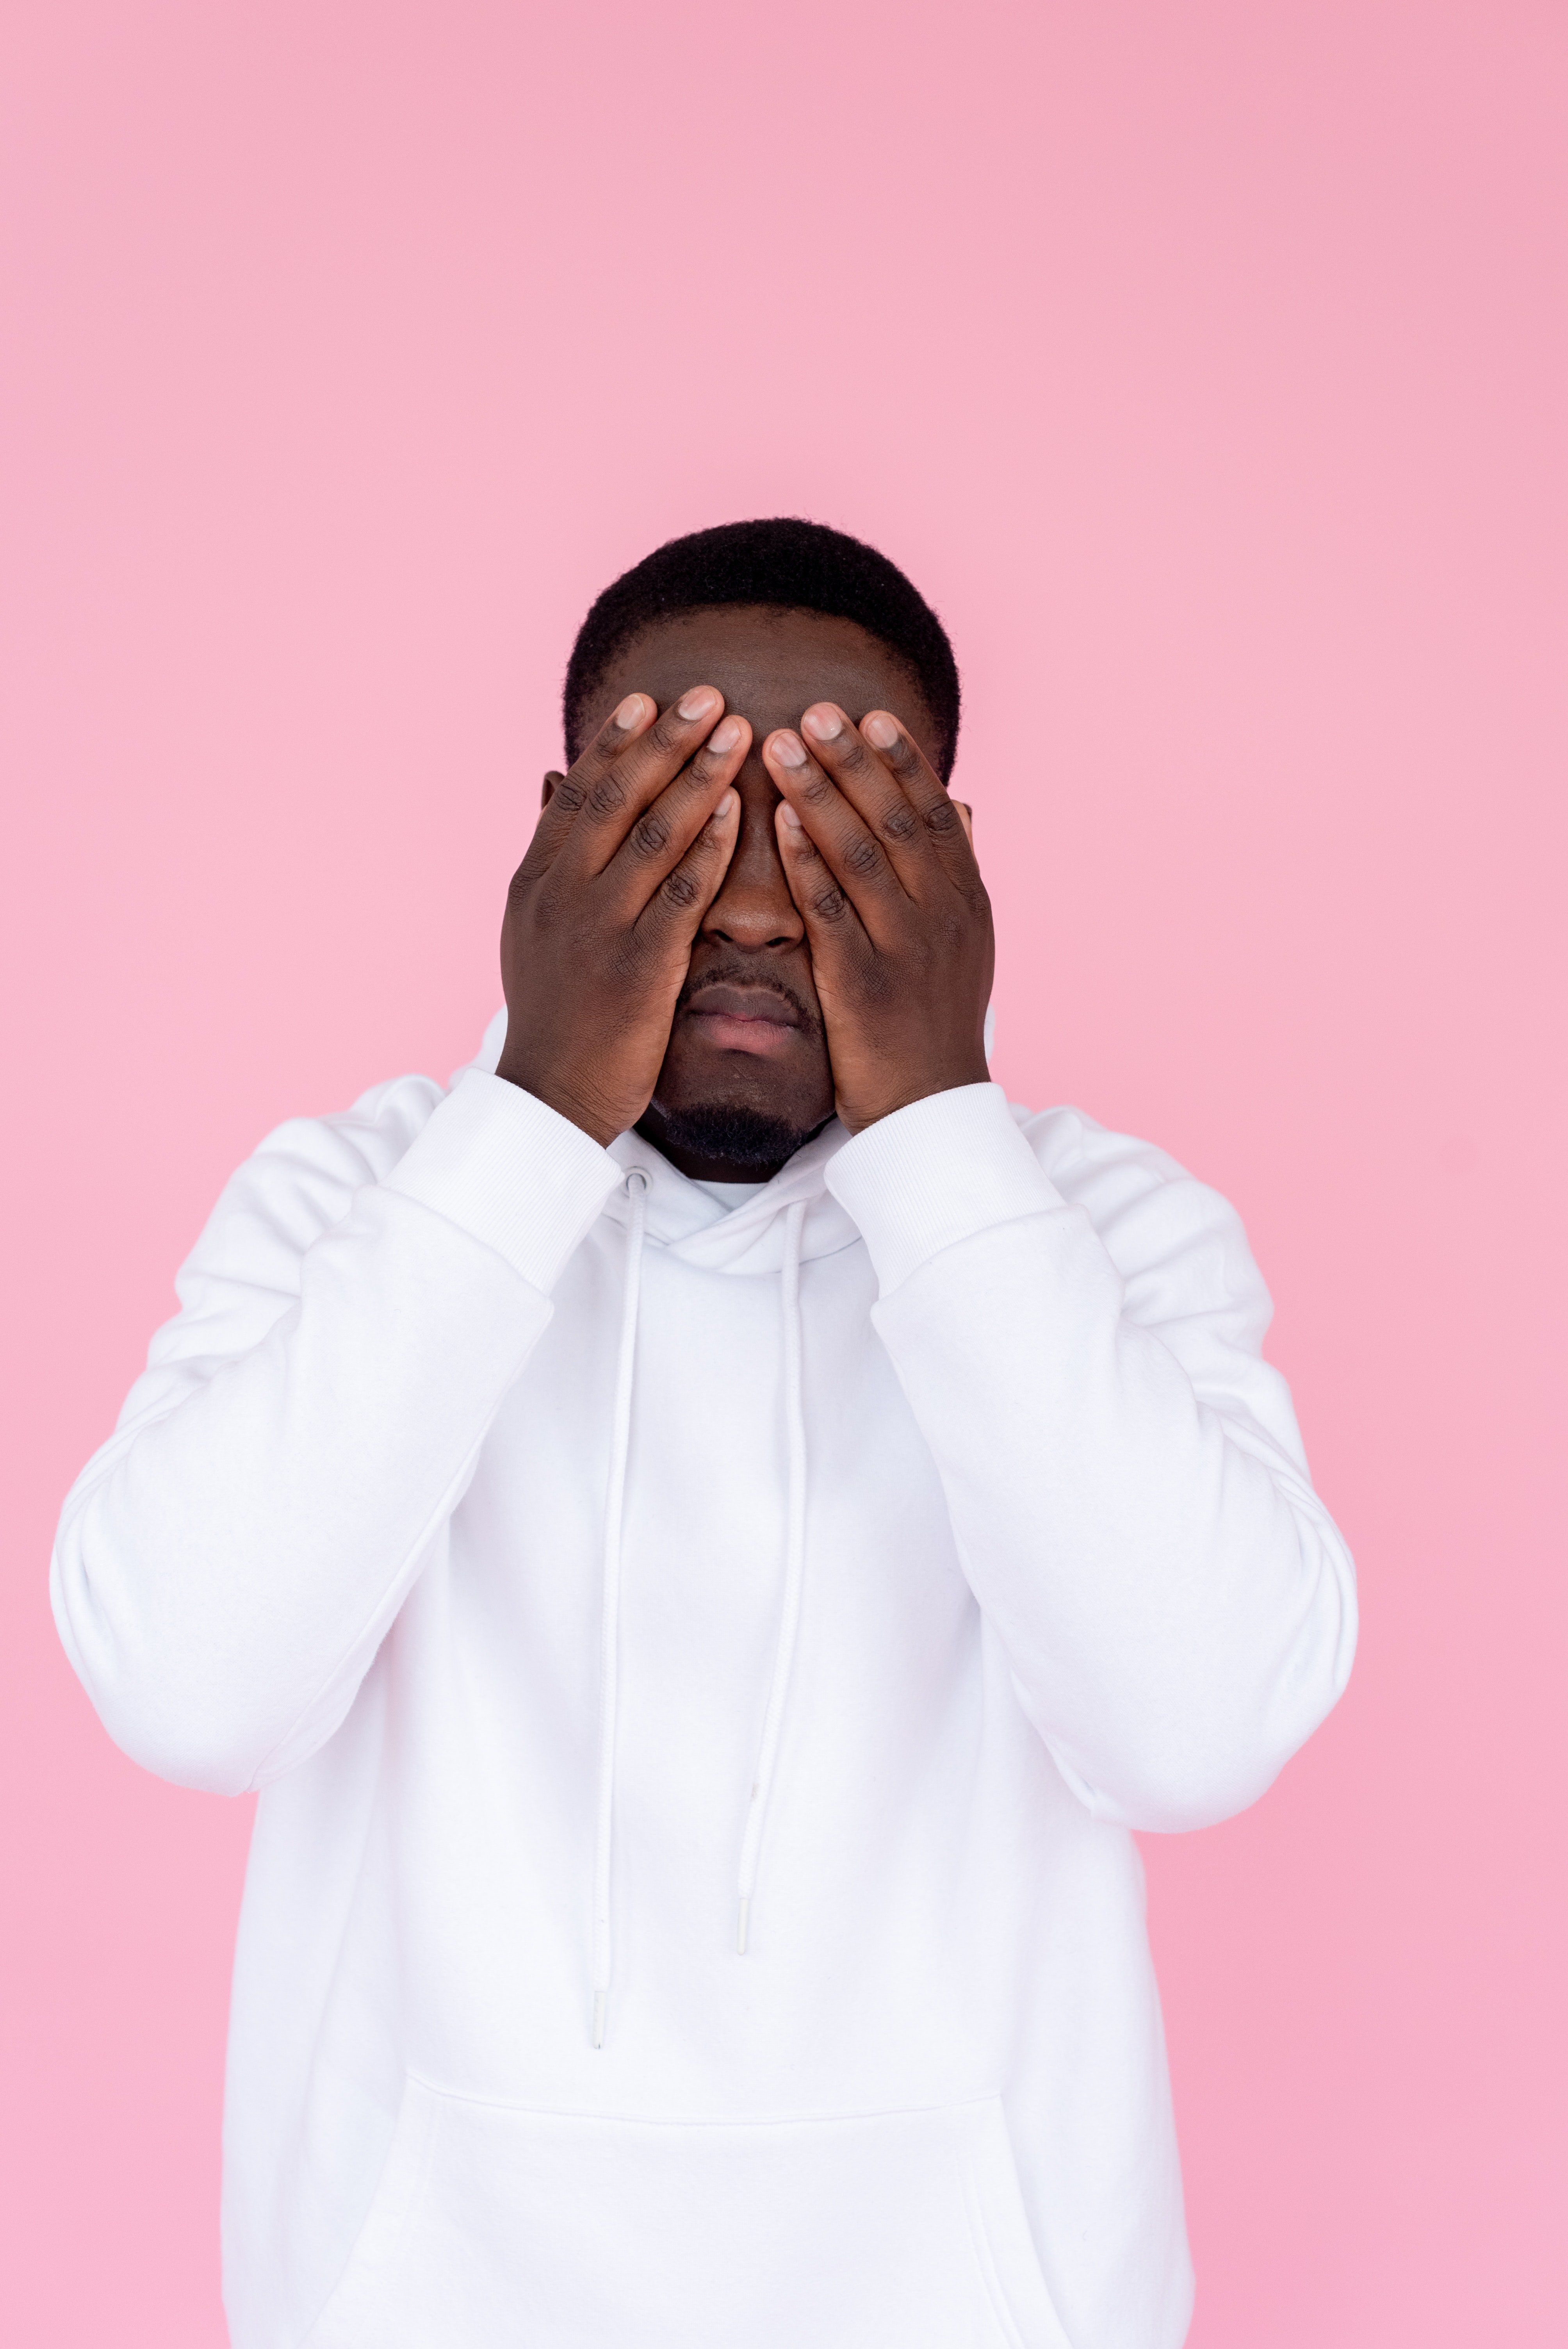 Sad black man covering his hands with face   Photo: Pexels